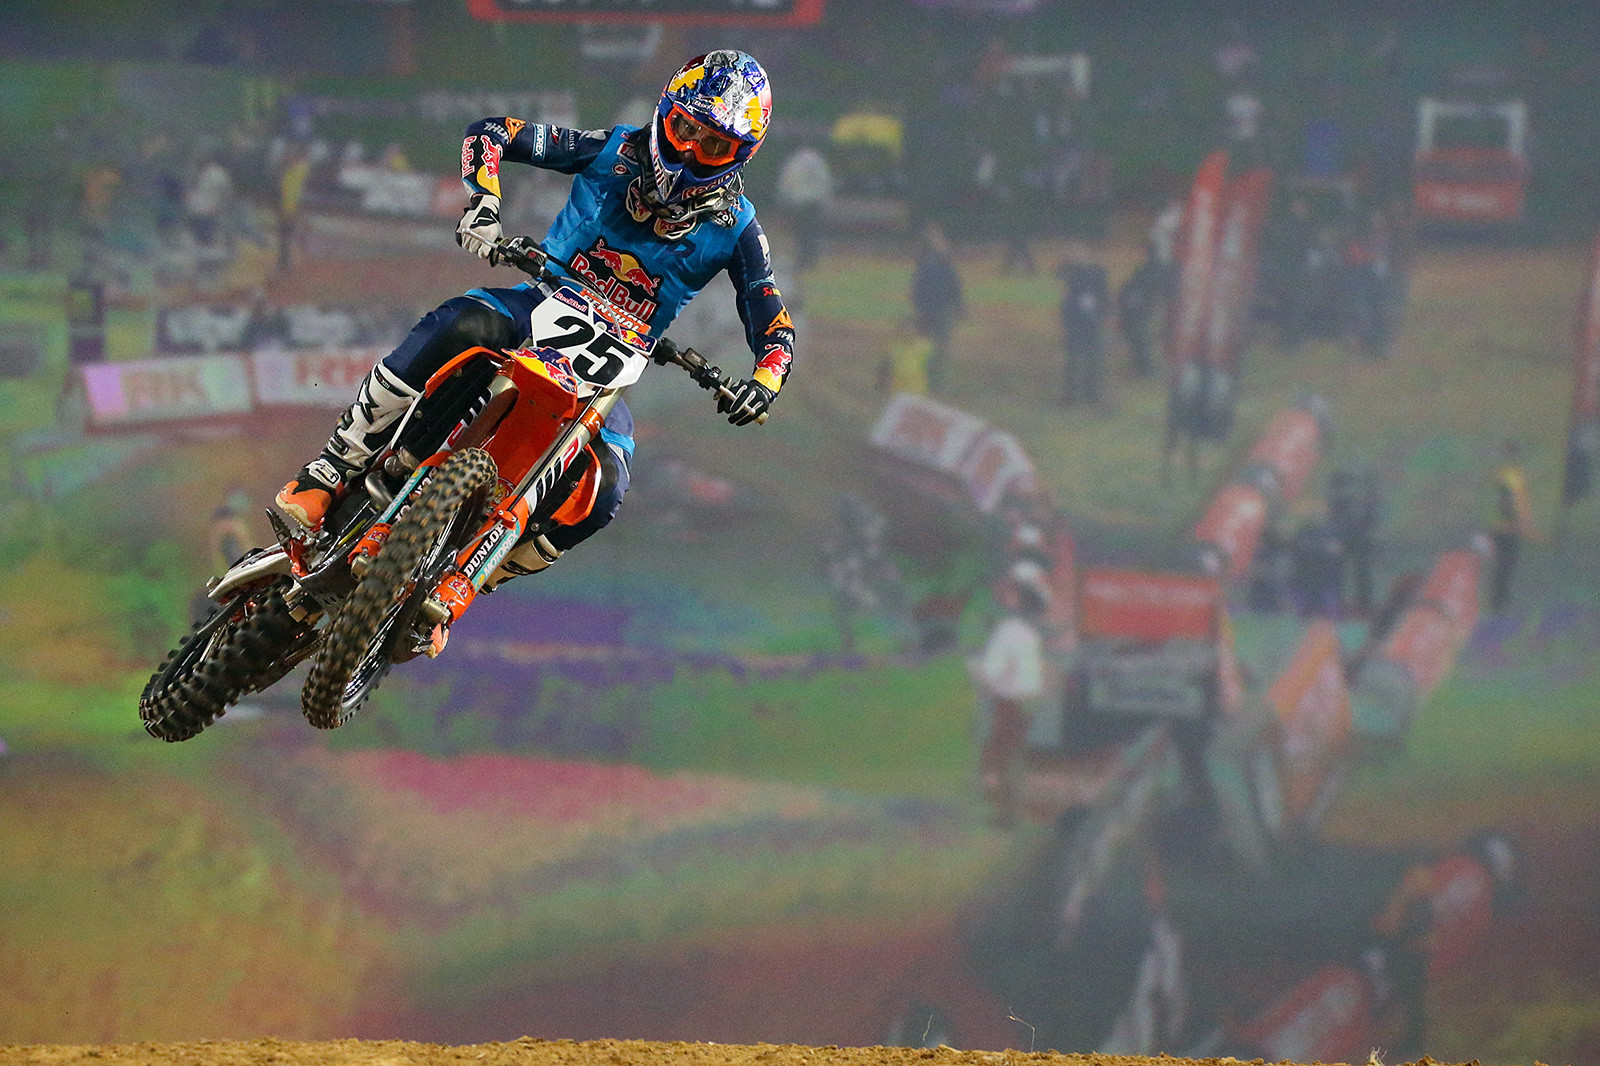 Marvin Musquin was second in qualifying during the afternoon, but he nabbed the Superpole with a fast lap that was a couple tenths faster than Cole Seely's lap.